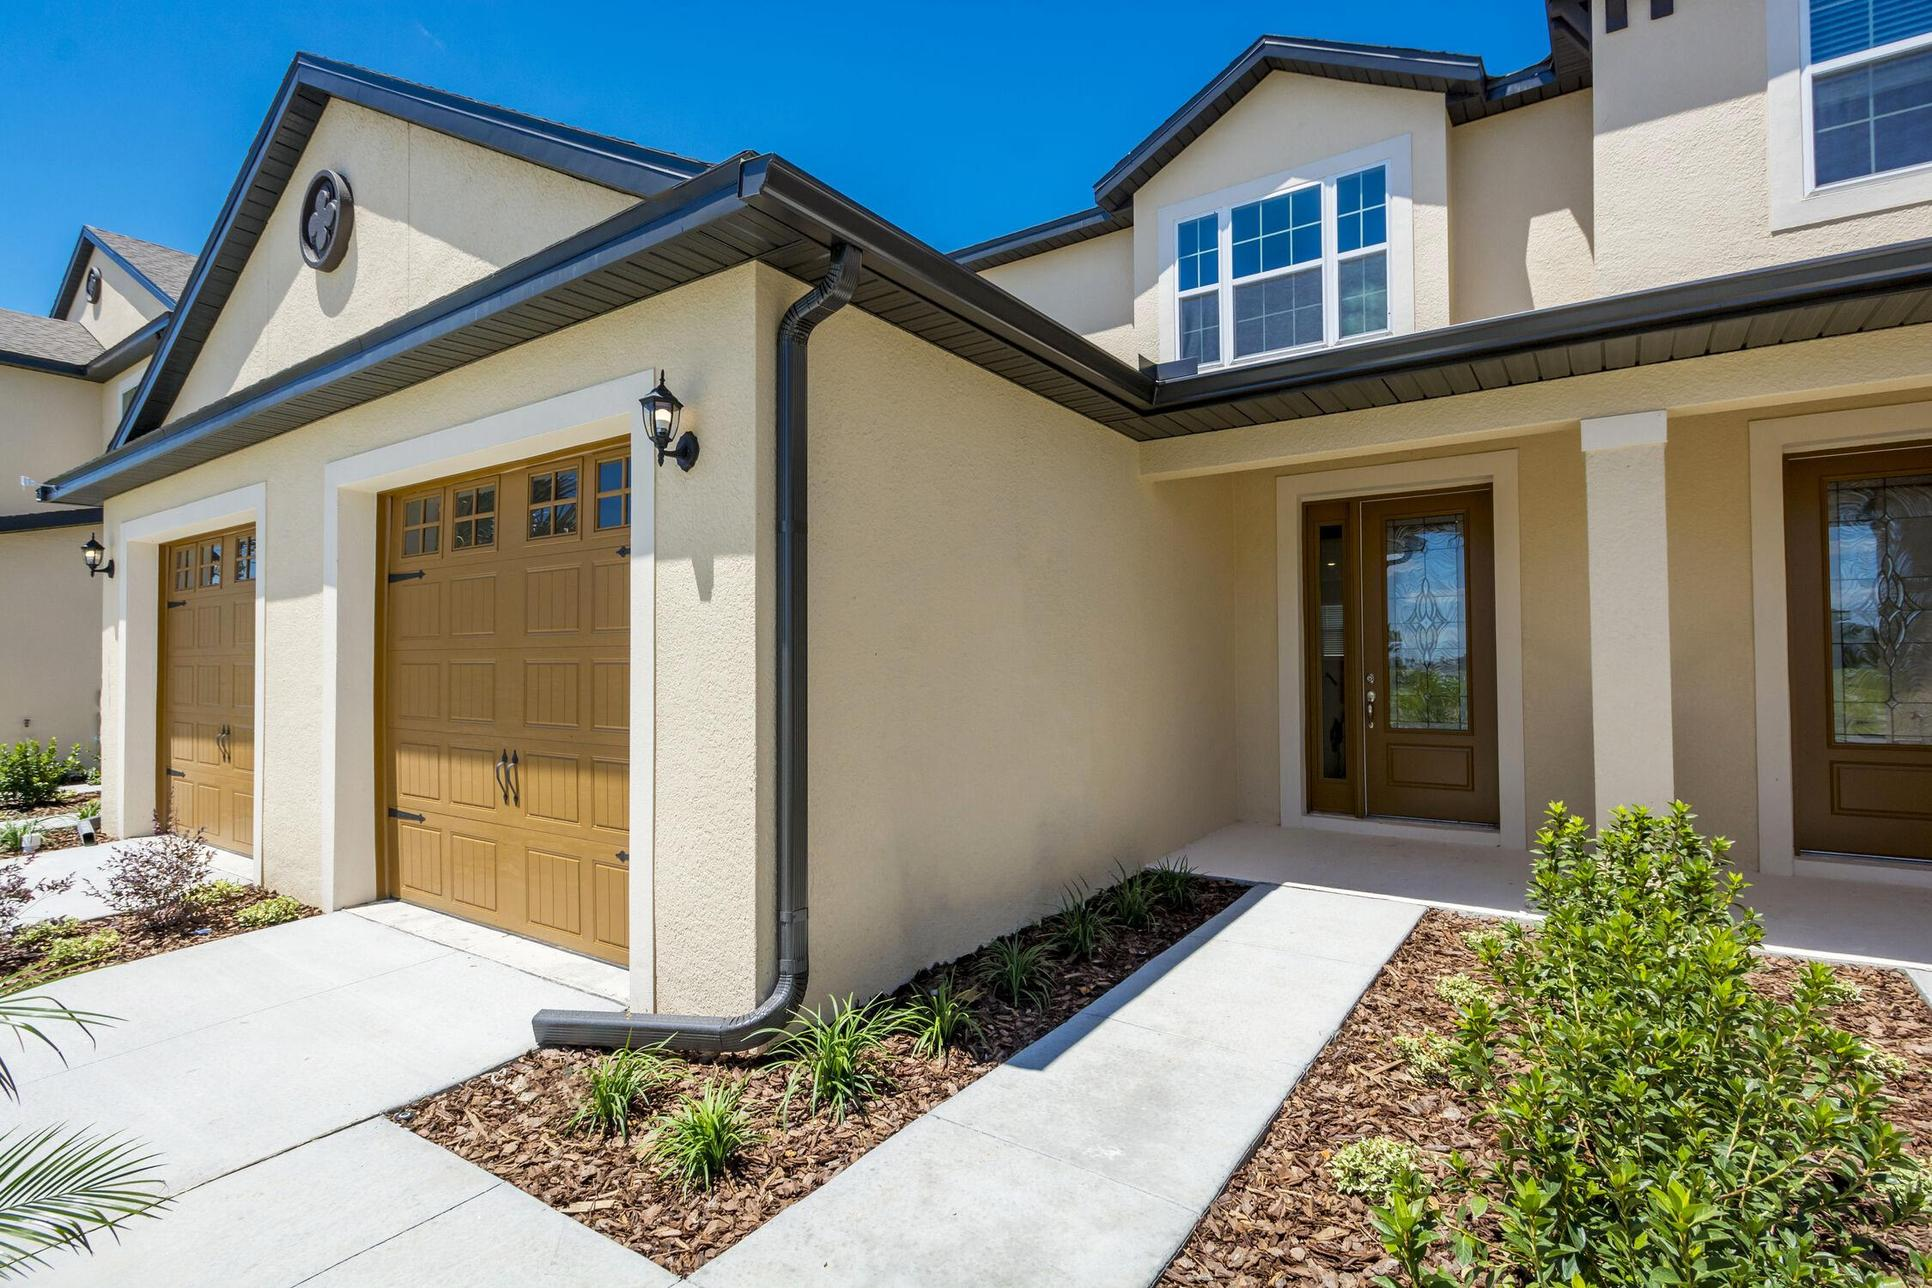 The Calabria by LGI Homes:Open-concept floor plan with added features included